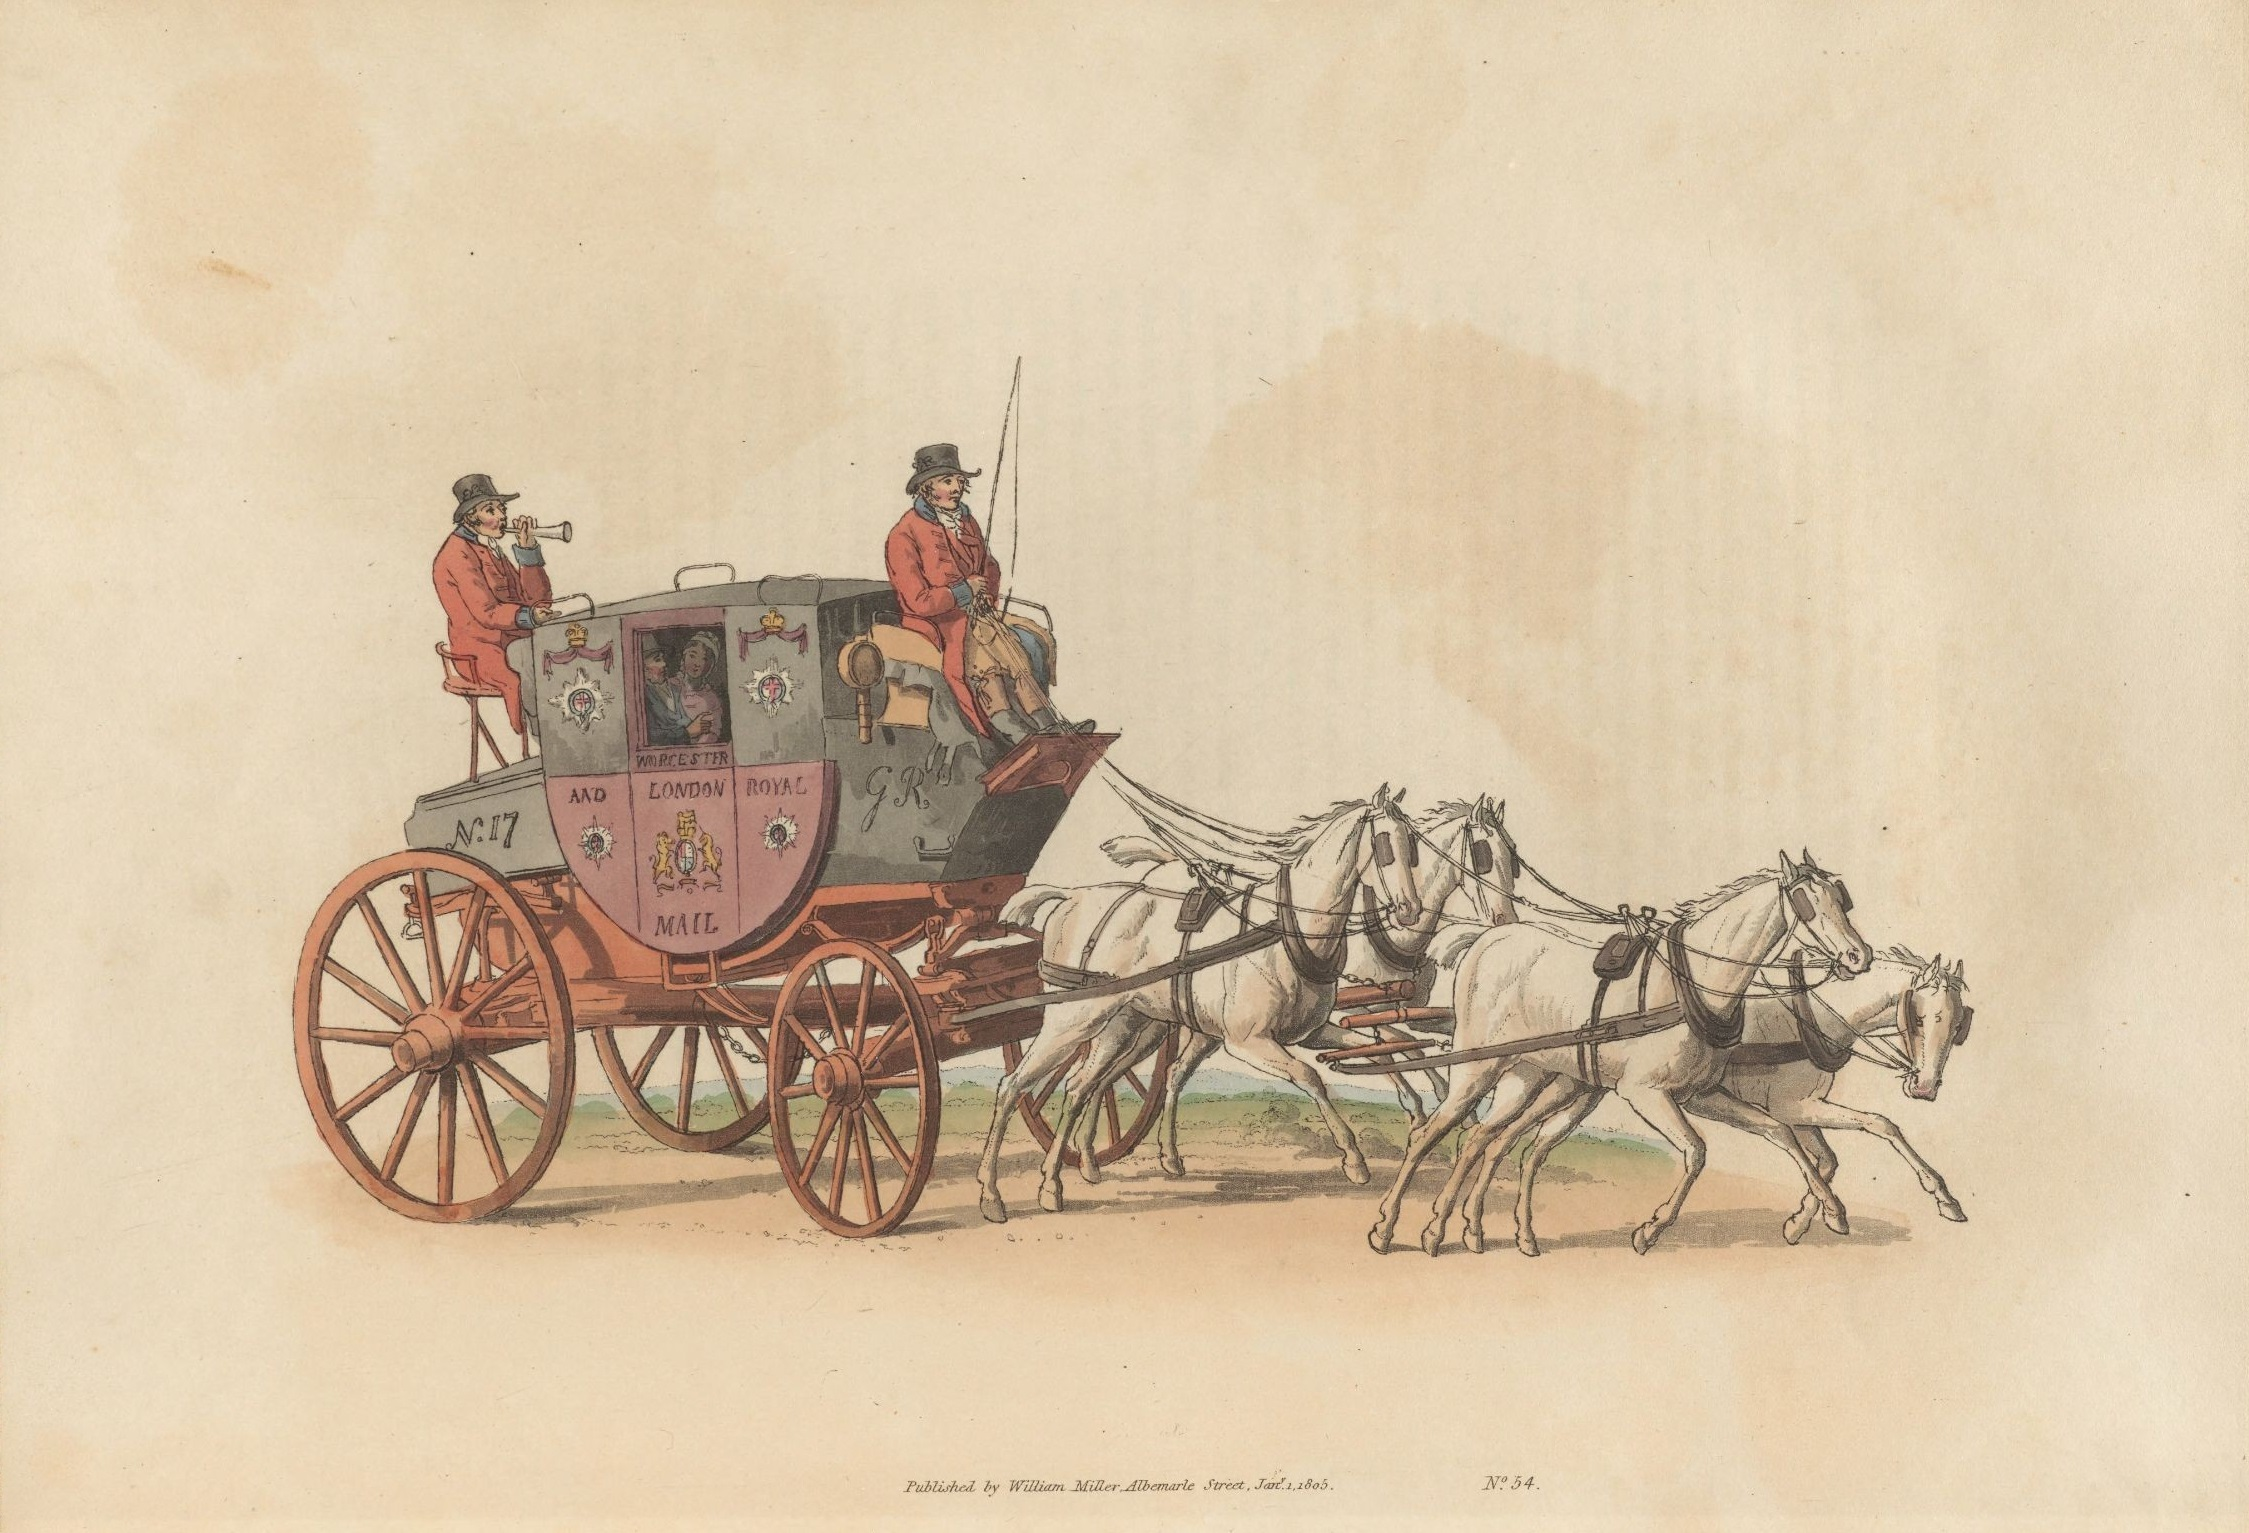 Mail coach decorated in the black and maroon Post Office livery. : Illustration from 'The Costume of Great Britain', 1808 (originally issued 1804), written and engraved by William Henry Pyne (1769-1843).